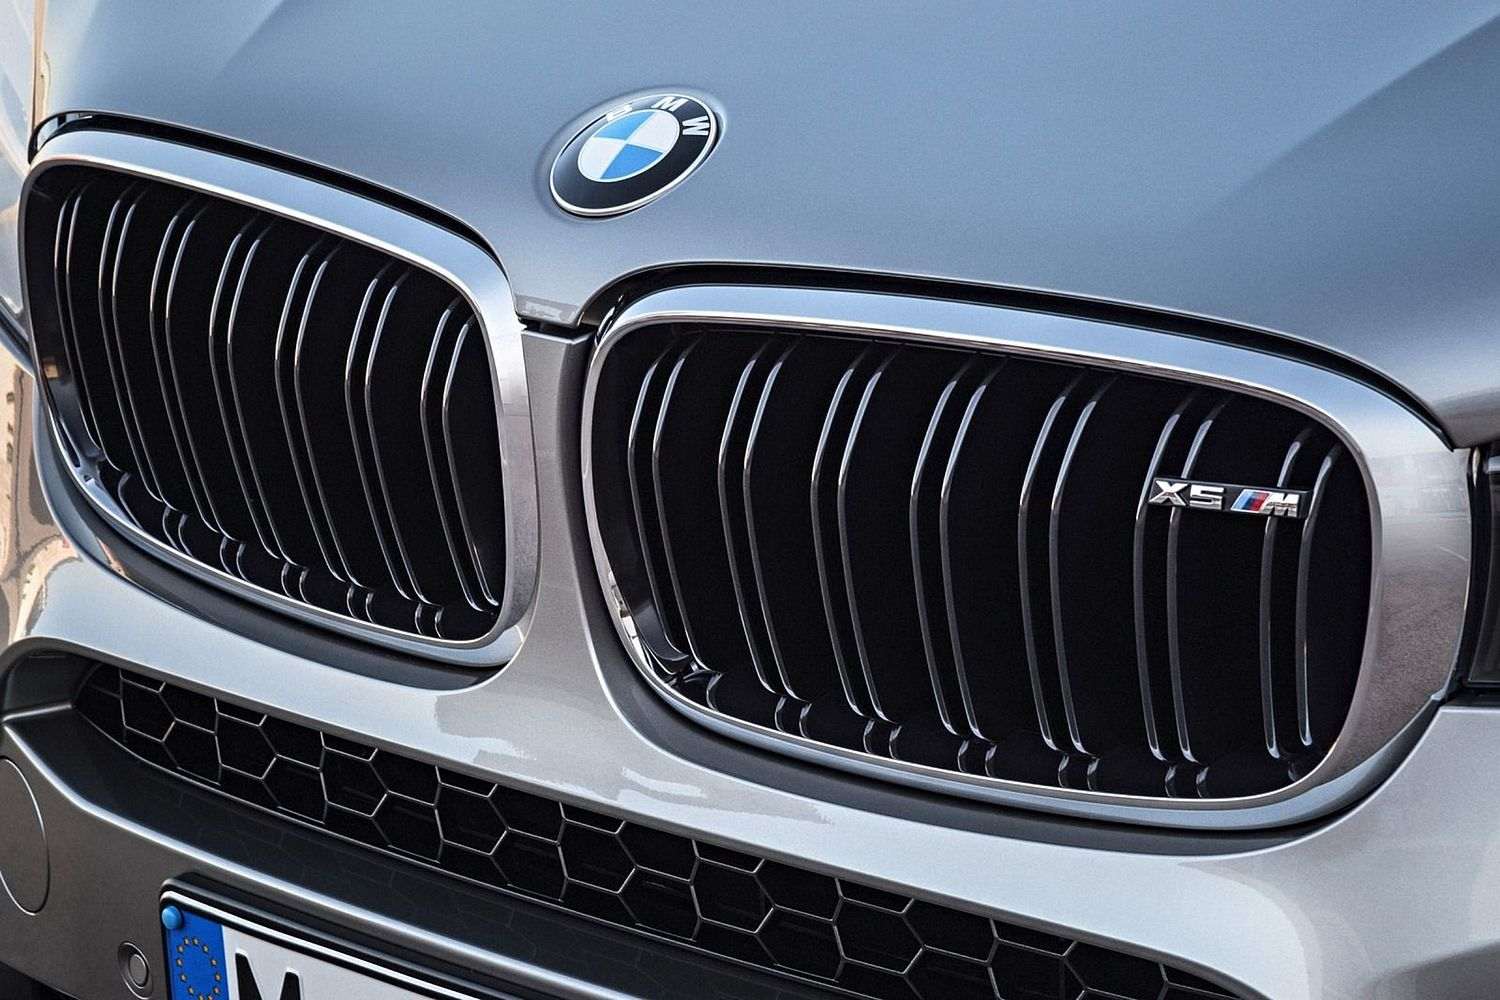 BMW X5 M 4dr SUV Front Badge